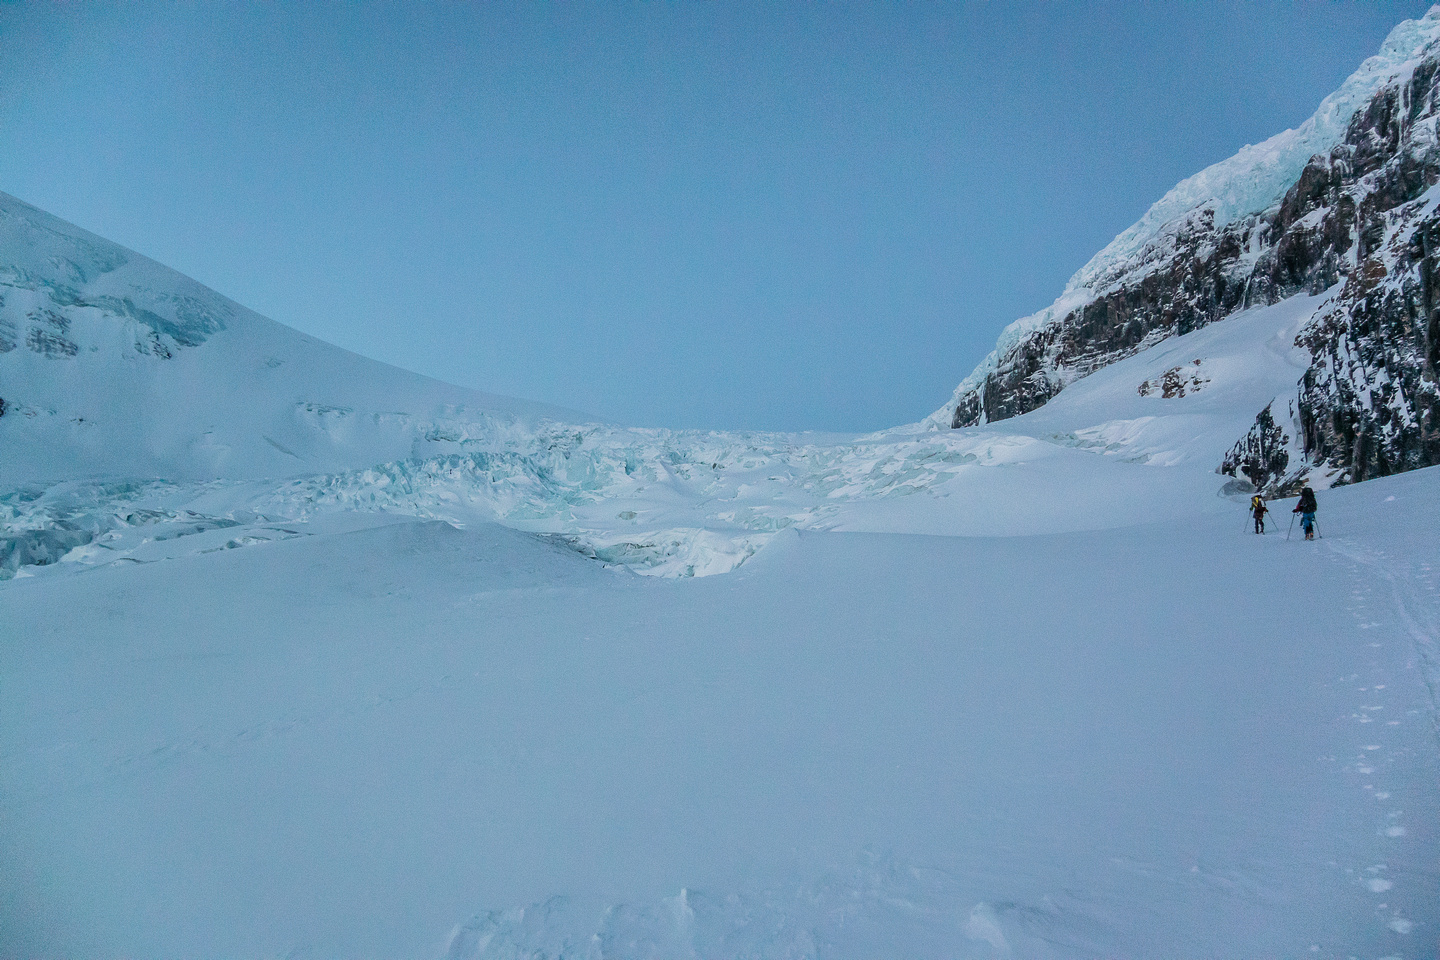 Good coverage as we start up skier's right on the lower icefall - note the seracs coming off Snow Dome high on the right.